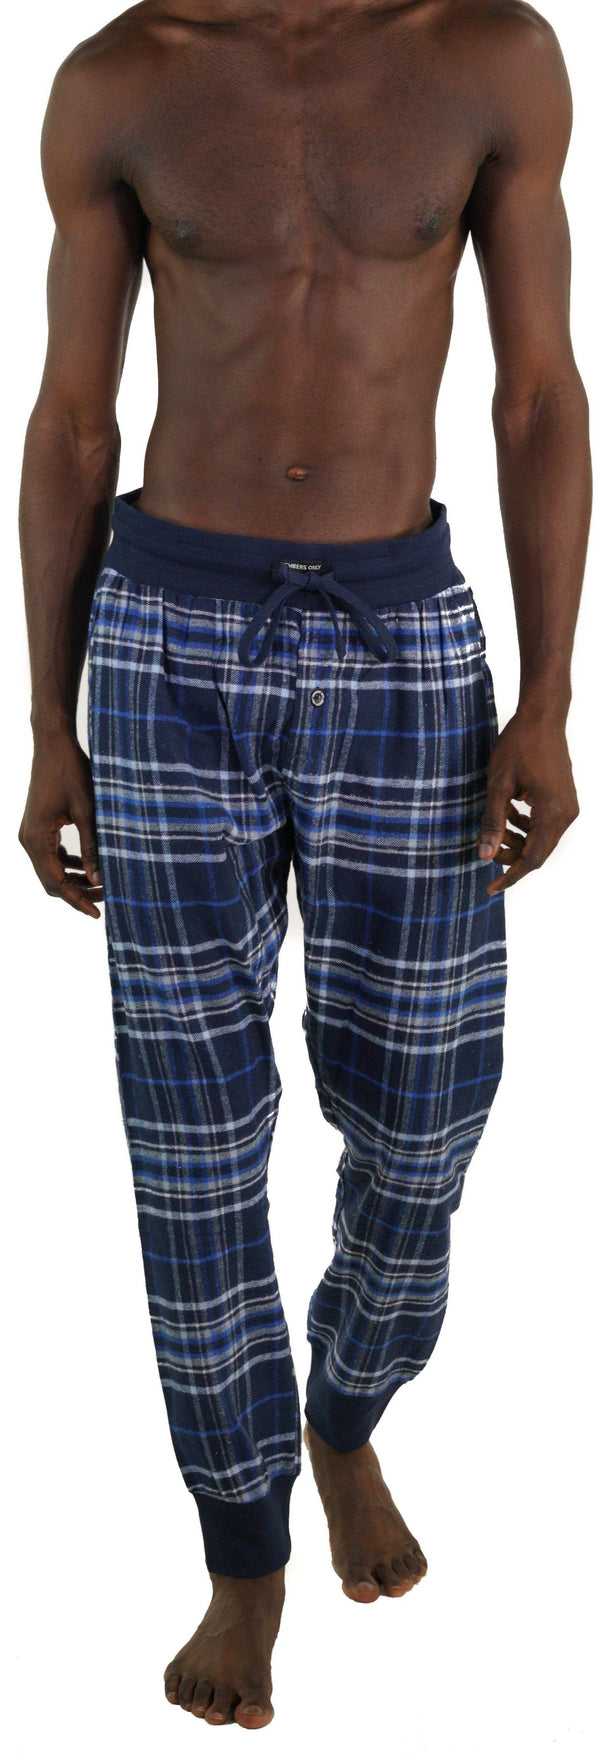 Men's Flannel Jogger Lounge Pants - GREY/BLUE Sleepwear Pants Members Only GREY/BLUE SMALL